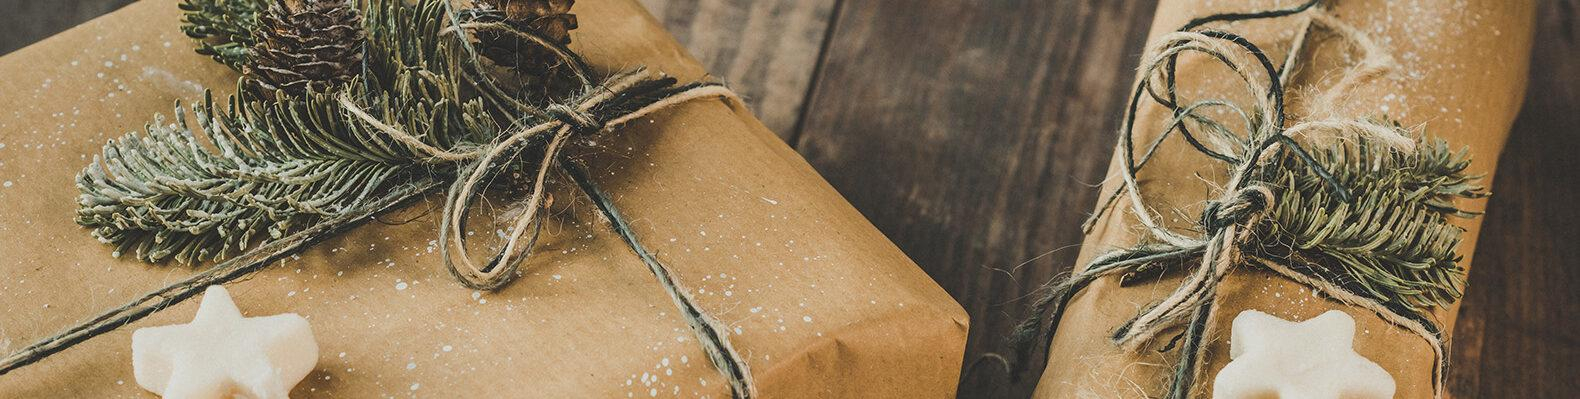 Brown paper packages tied up with string and decorated with white star shapes, pine needles and pinecones.